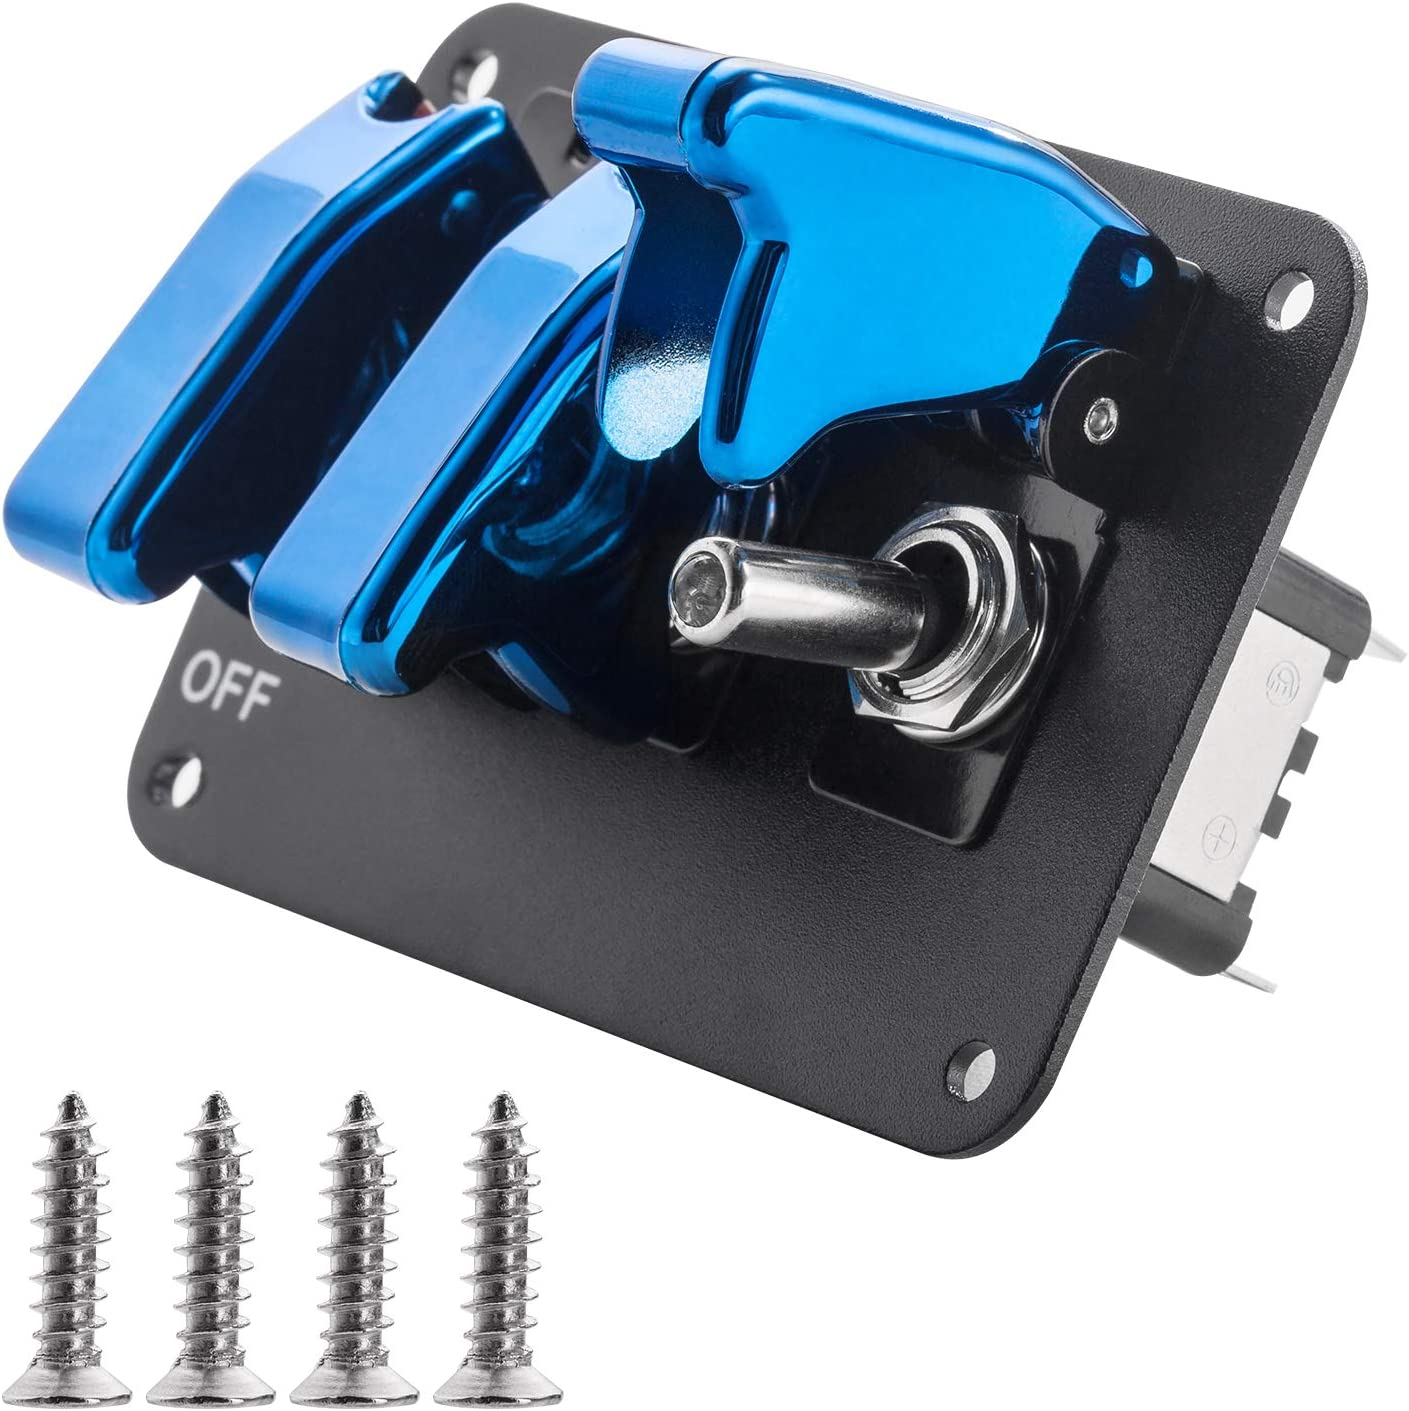 JIANFA Toggle Switch Panel,Universal Car 12V Ignition Switch 3 Row BLUE Plating Cover Anodized Surface Panel Toggle Switch For Racing Sport Competitive Car